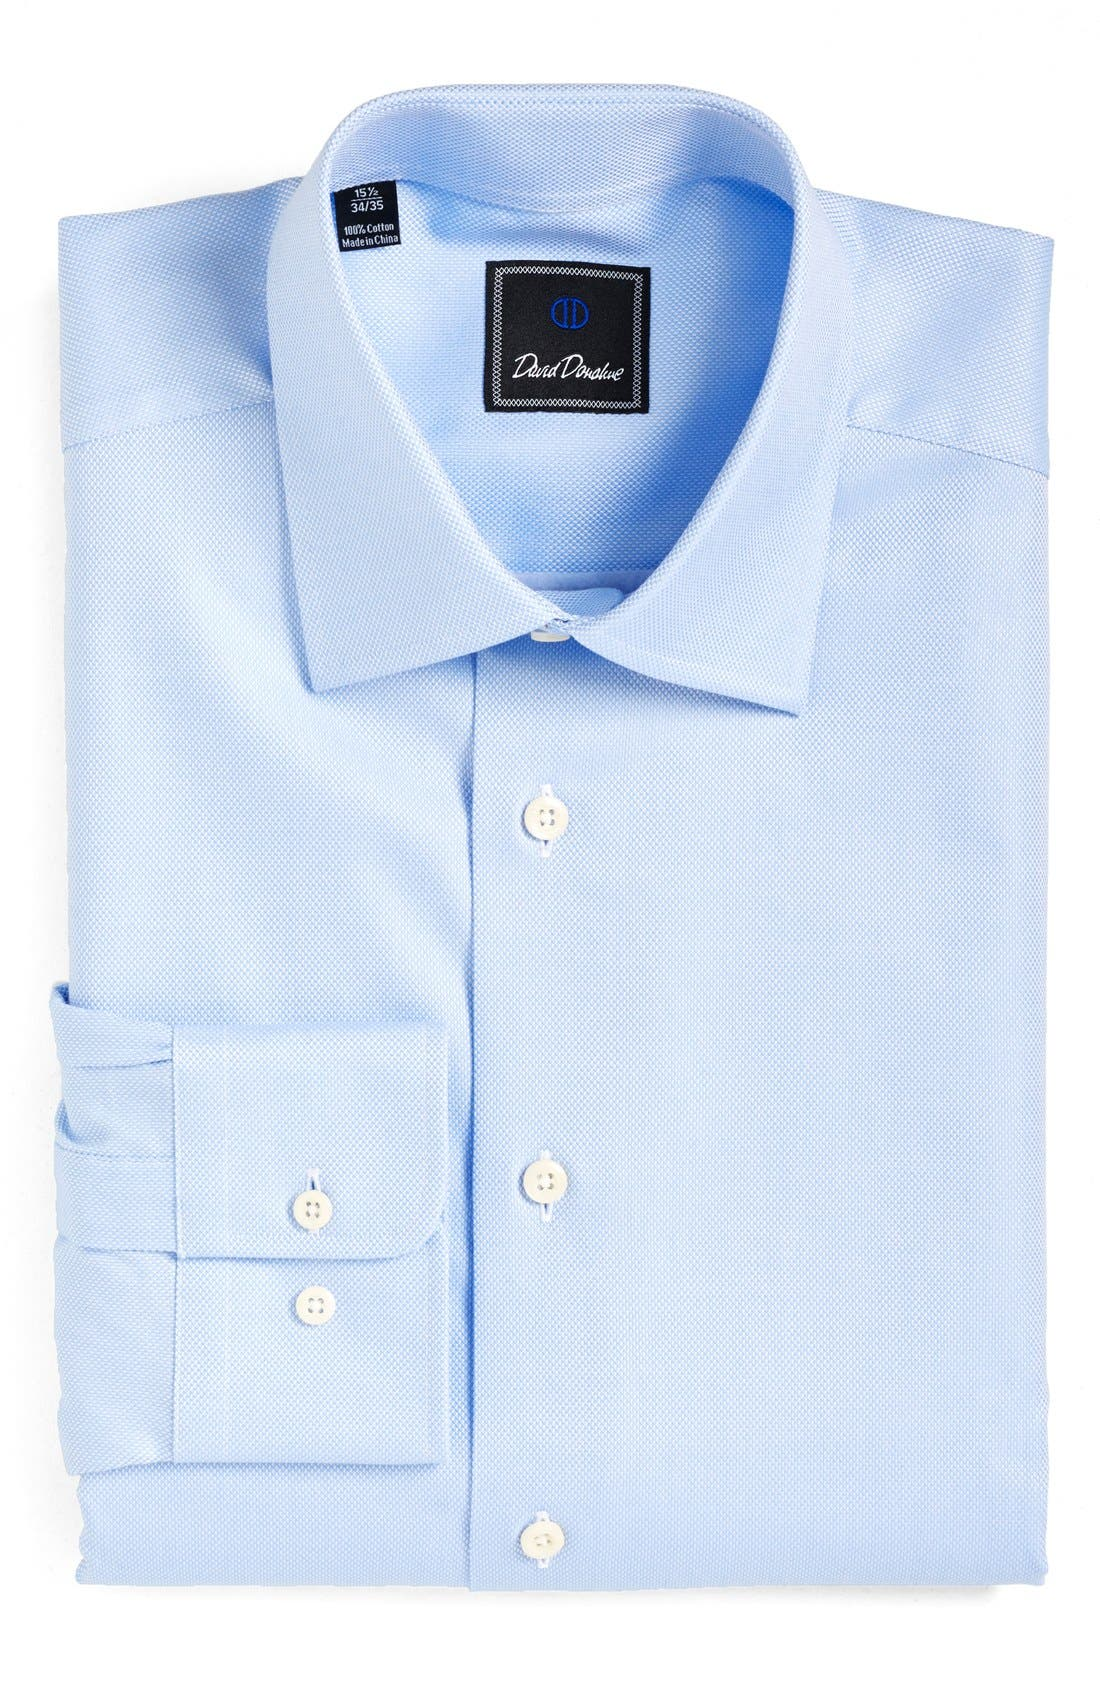 Alternate Image 1 Selected - David Donahue Regular Fit Oxford Dress Shirt